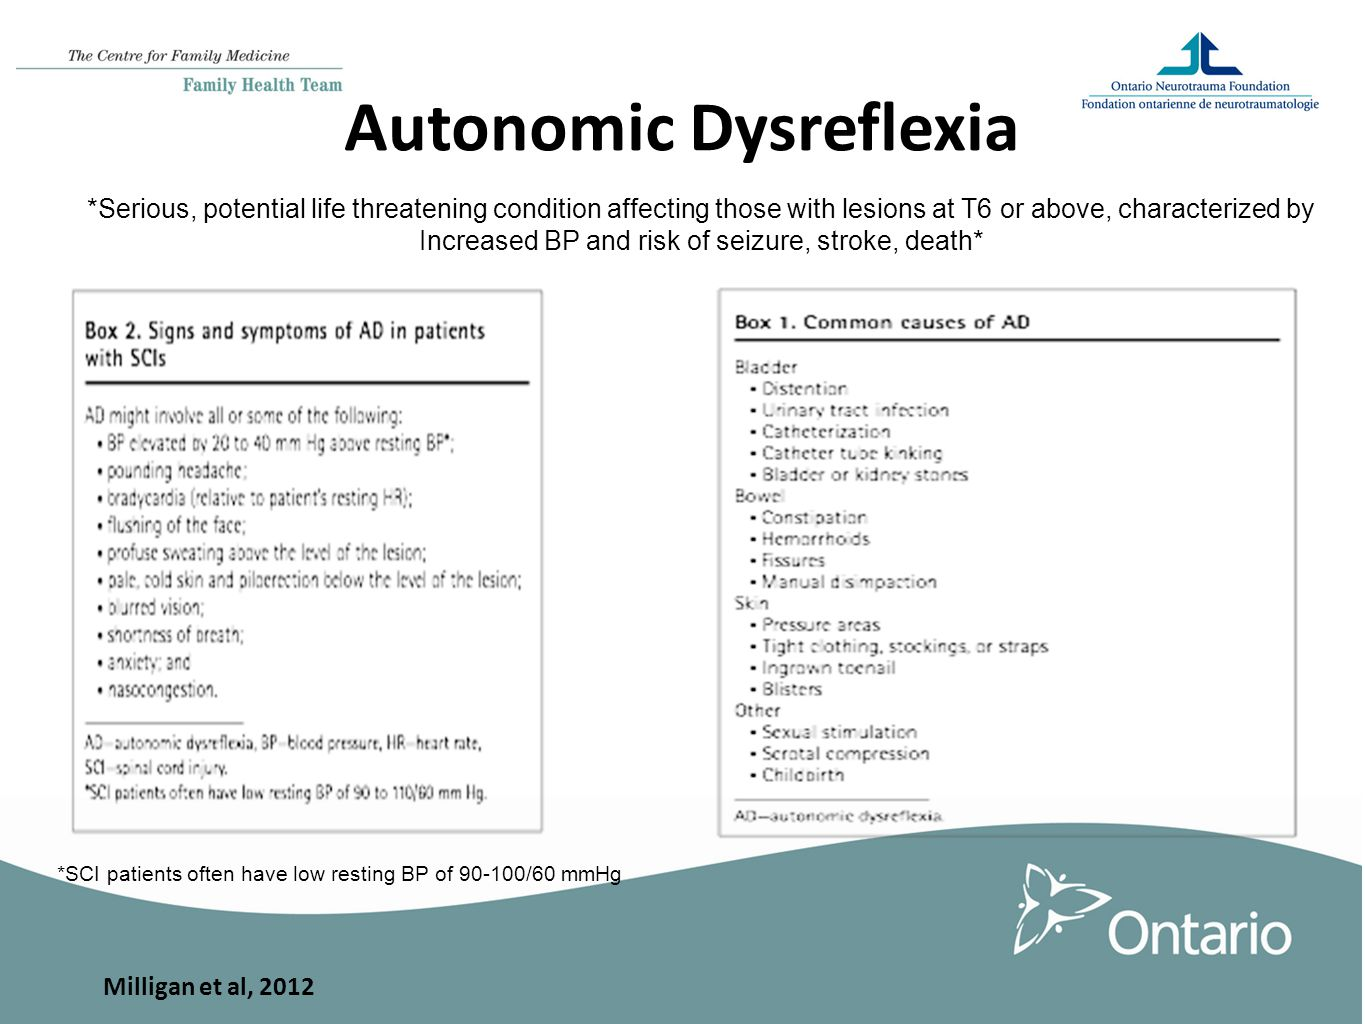 Autonomic Dysreflexia *Serious, potential life threatening condition affecting those with lesions at T6 or above, characterized by Increased BP and risk of seizure, stroke, death* *SCI patients often have low resting BP of 90-100/60 mmHg Milligan et al, 2012